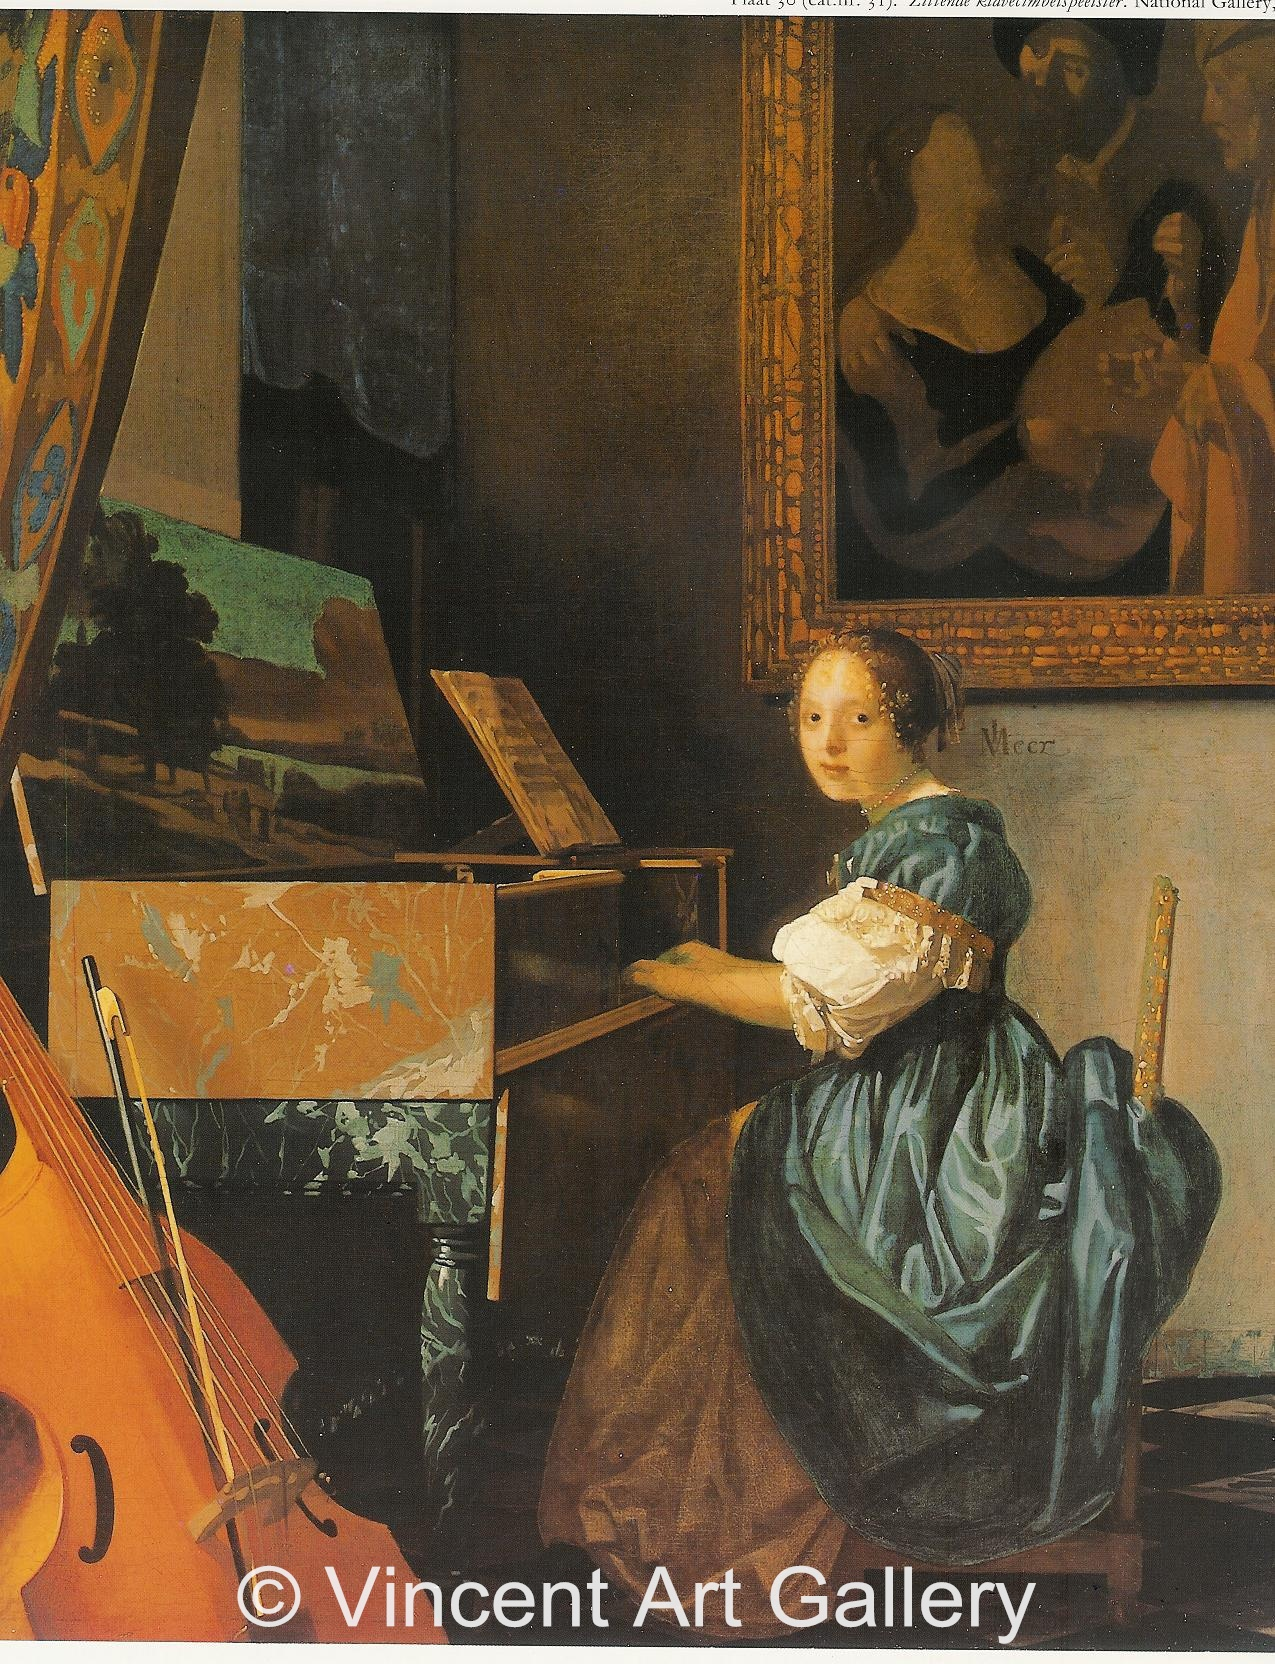 A1829, VERMEER, part of Lady seated at a Virginal